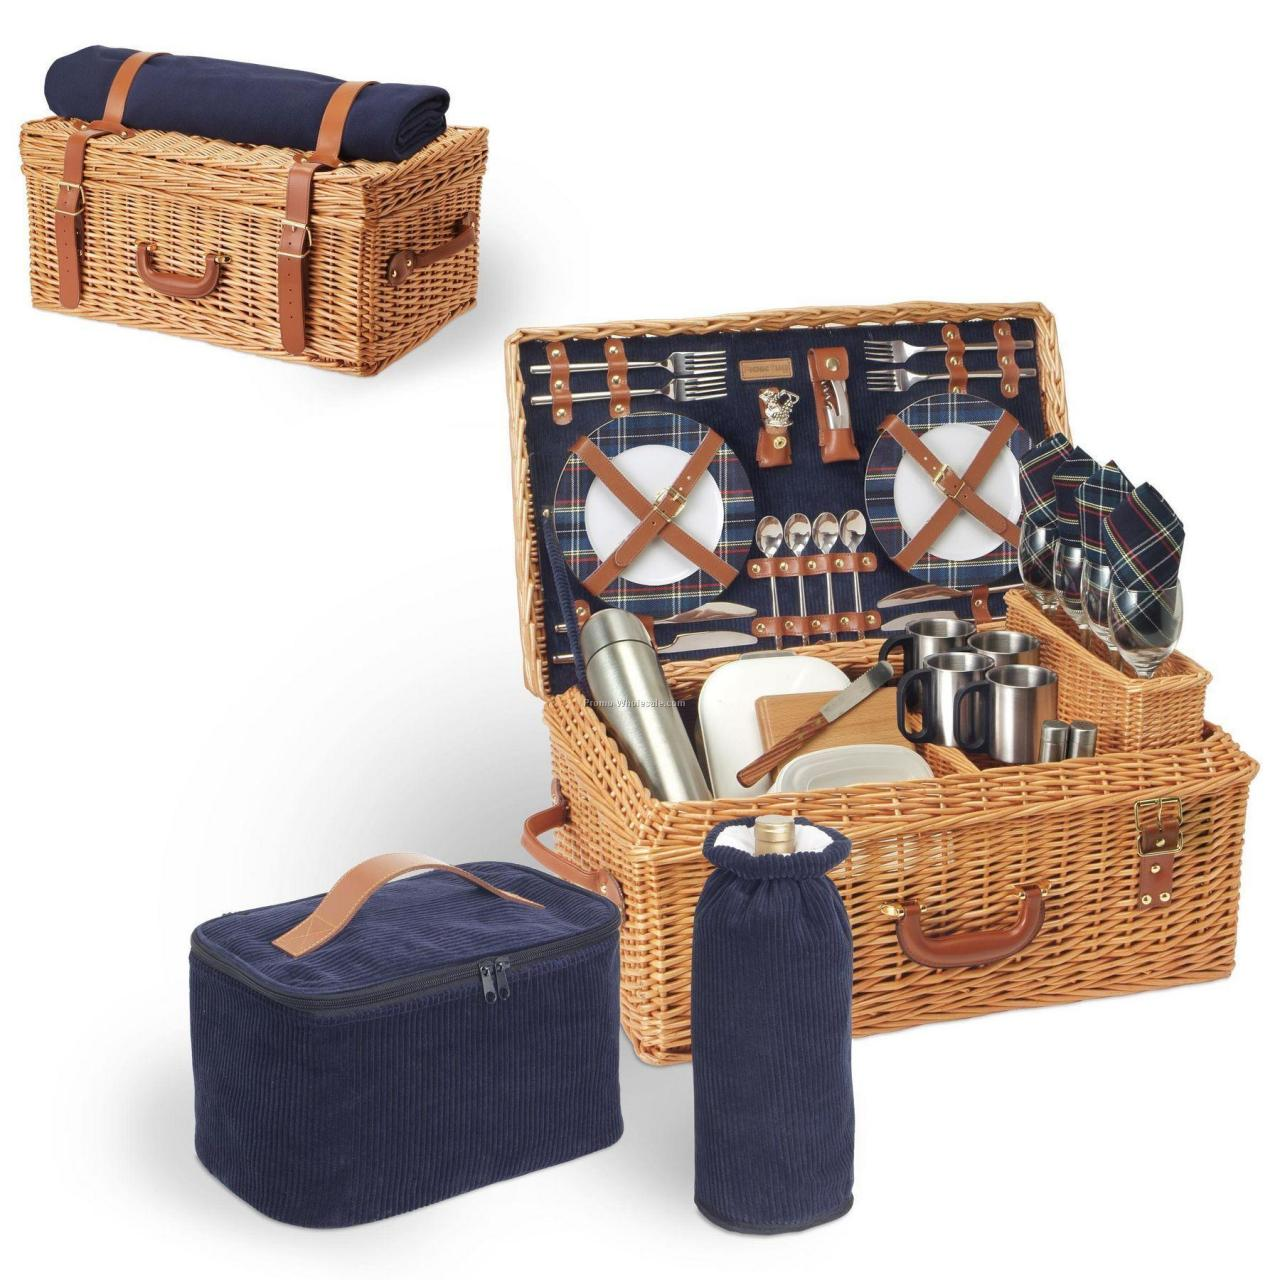 Cheap Windsor English Style Suitcase Picnic Basket With Service For 4 for sale